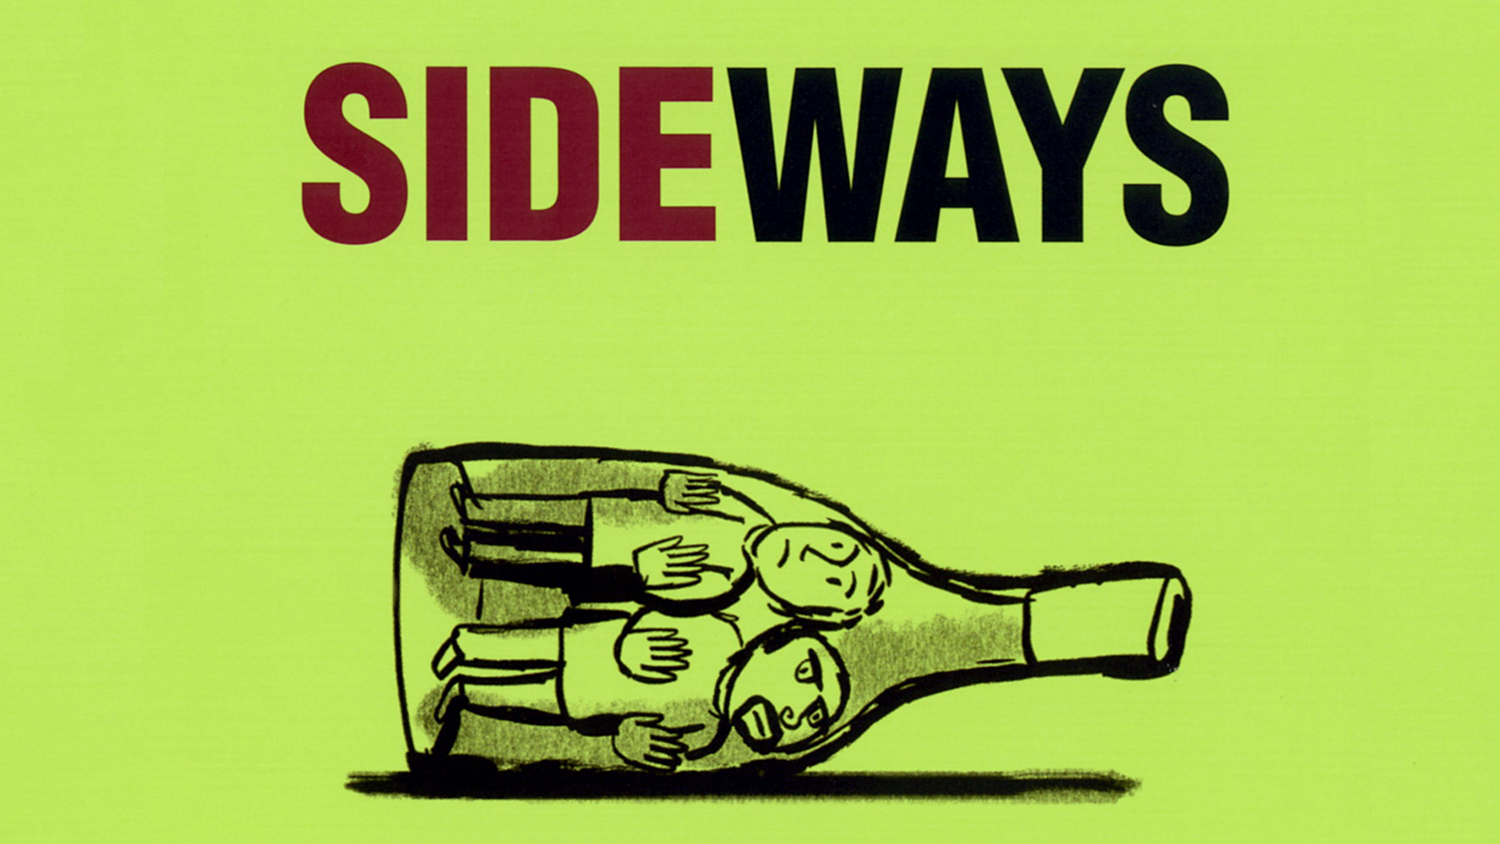 'Sideways' is Still Impacting the Wine Industry